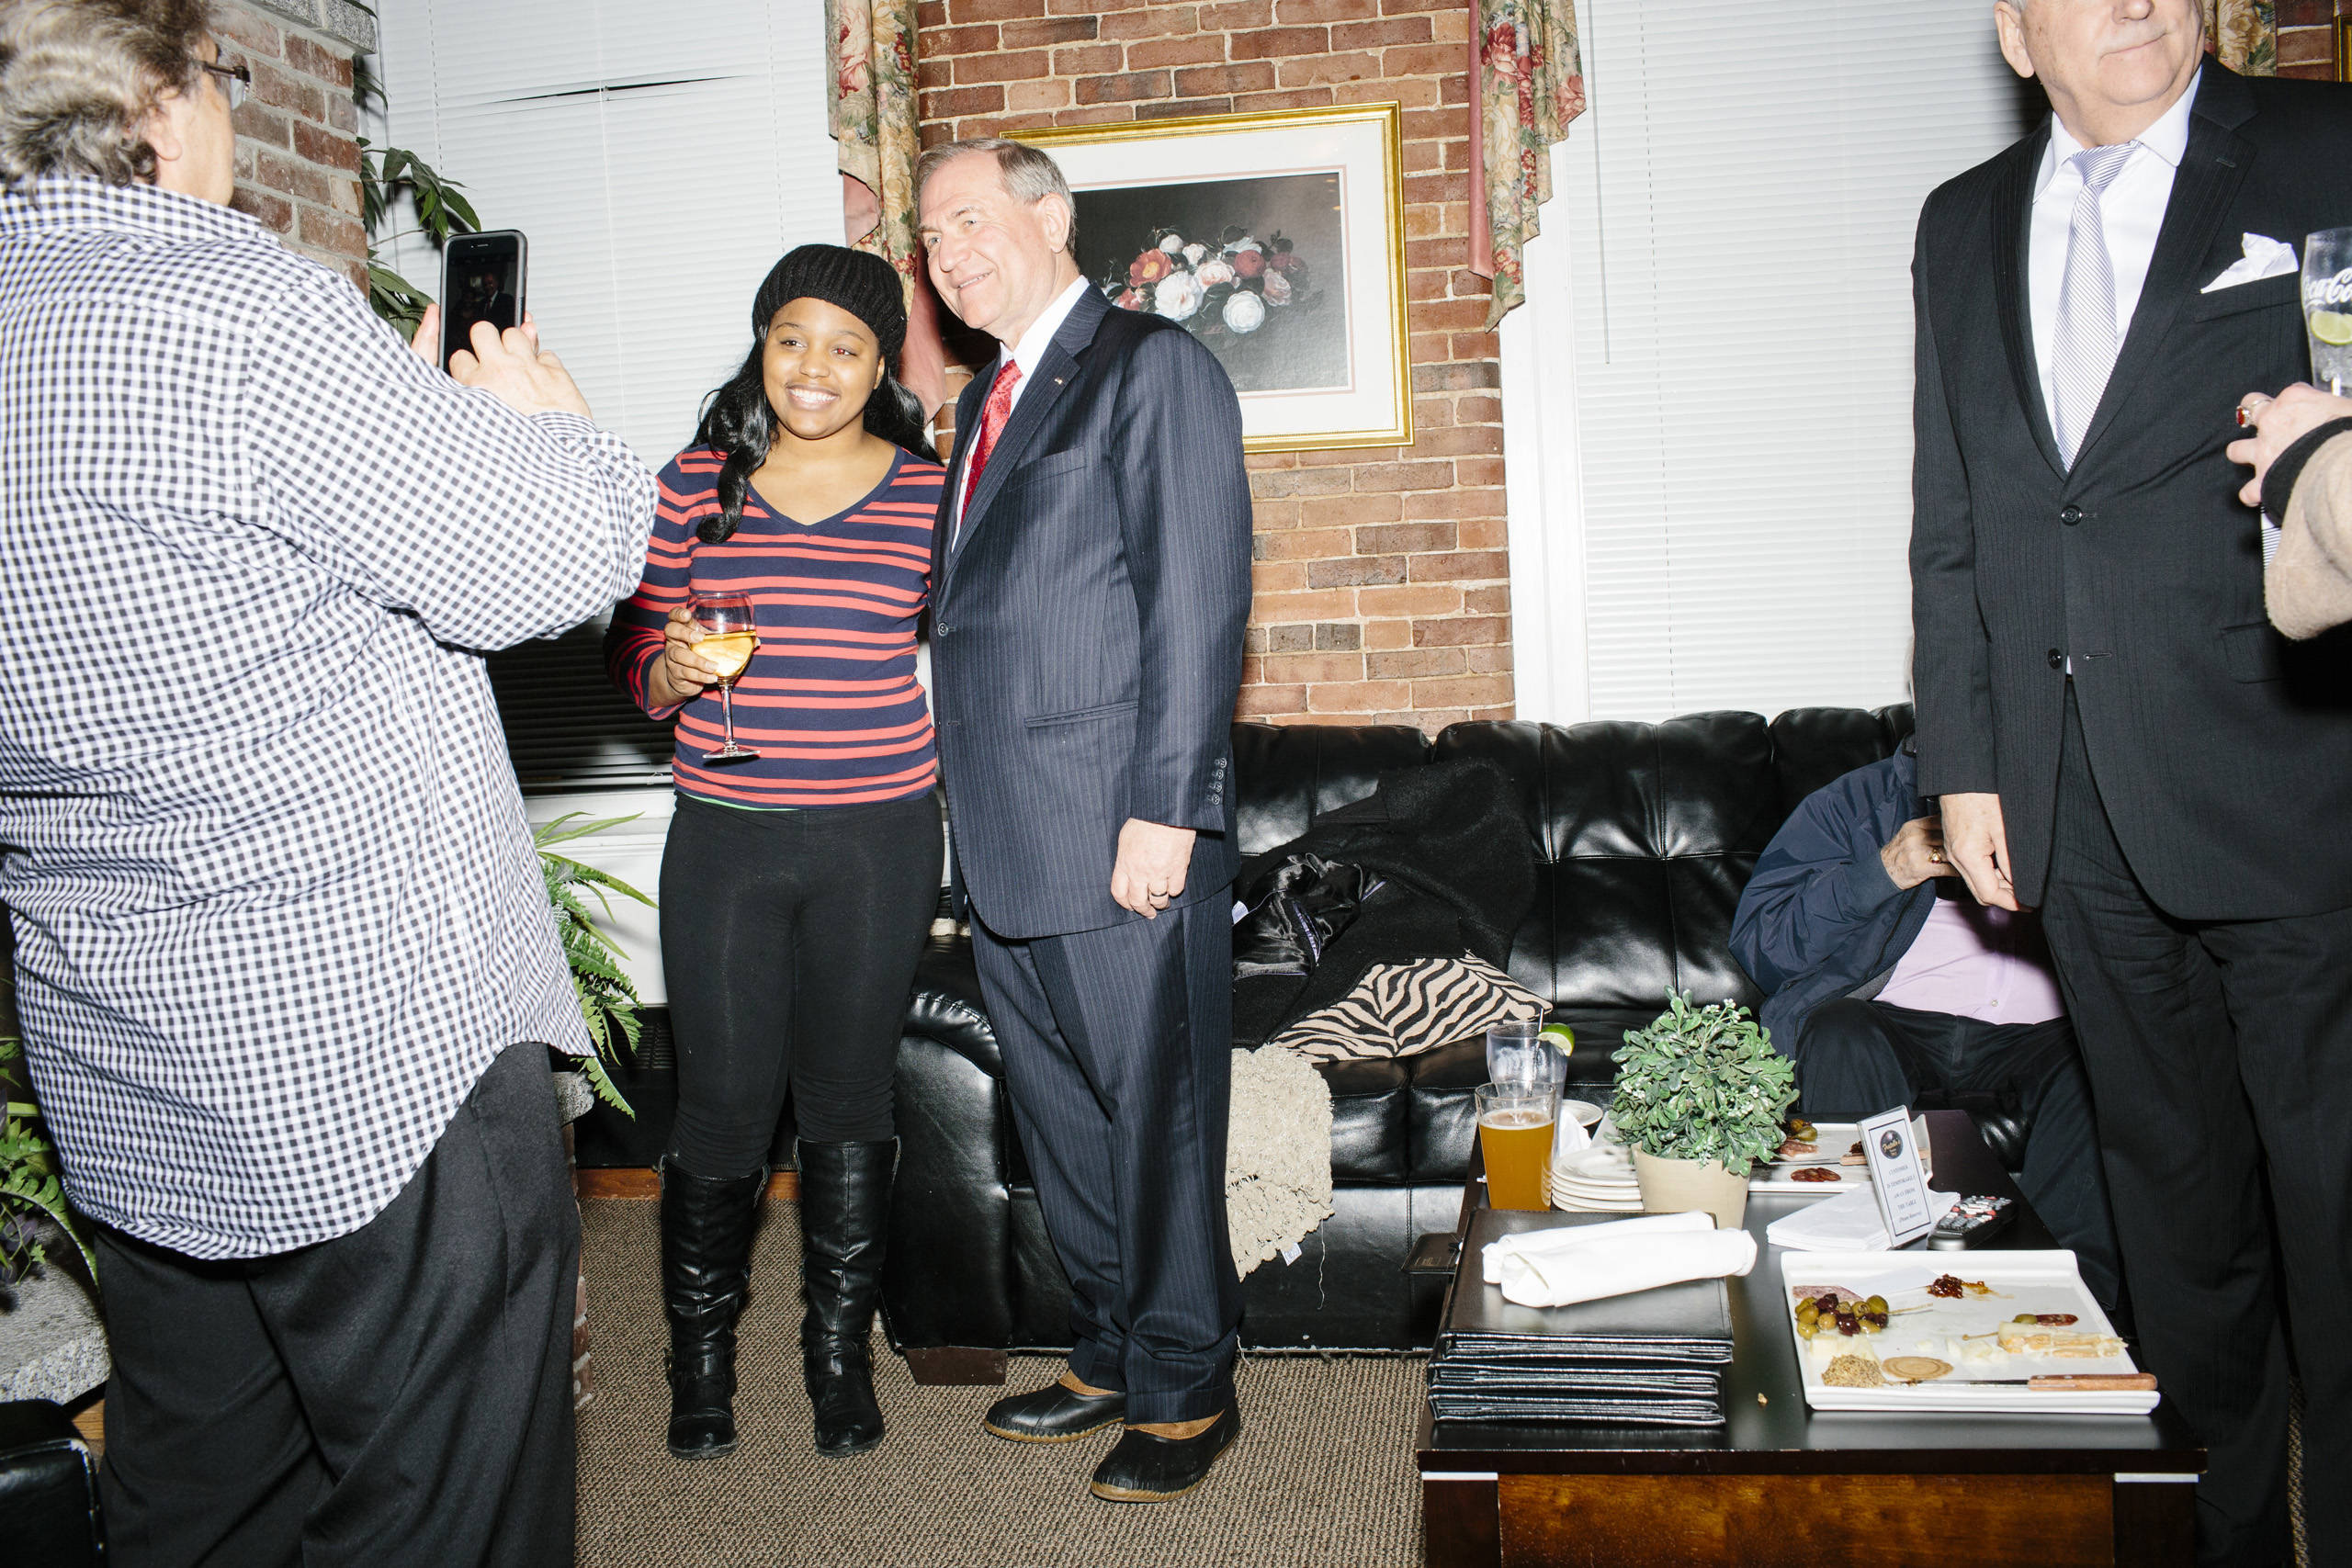 Former Virginia governor and Republican presidential candidate Jim Gilmore speaks with Gary LaBella, of Arlington, Virginia, (checkered shirt) and Lauren Green, of Silver Spring, Maryland, a Master's student in Political Communications at American University, at the Gilmore primary watch party at Fratello's in Manchester, New Hampshire on the day of primary voting, Feb. 9, 2016. LaBella came to the party because he said Gilmore was a good governor in Virginia. He was in the state for the primary acting as a chaperone for American University students visiting to watch the process.